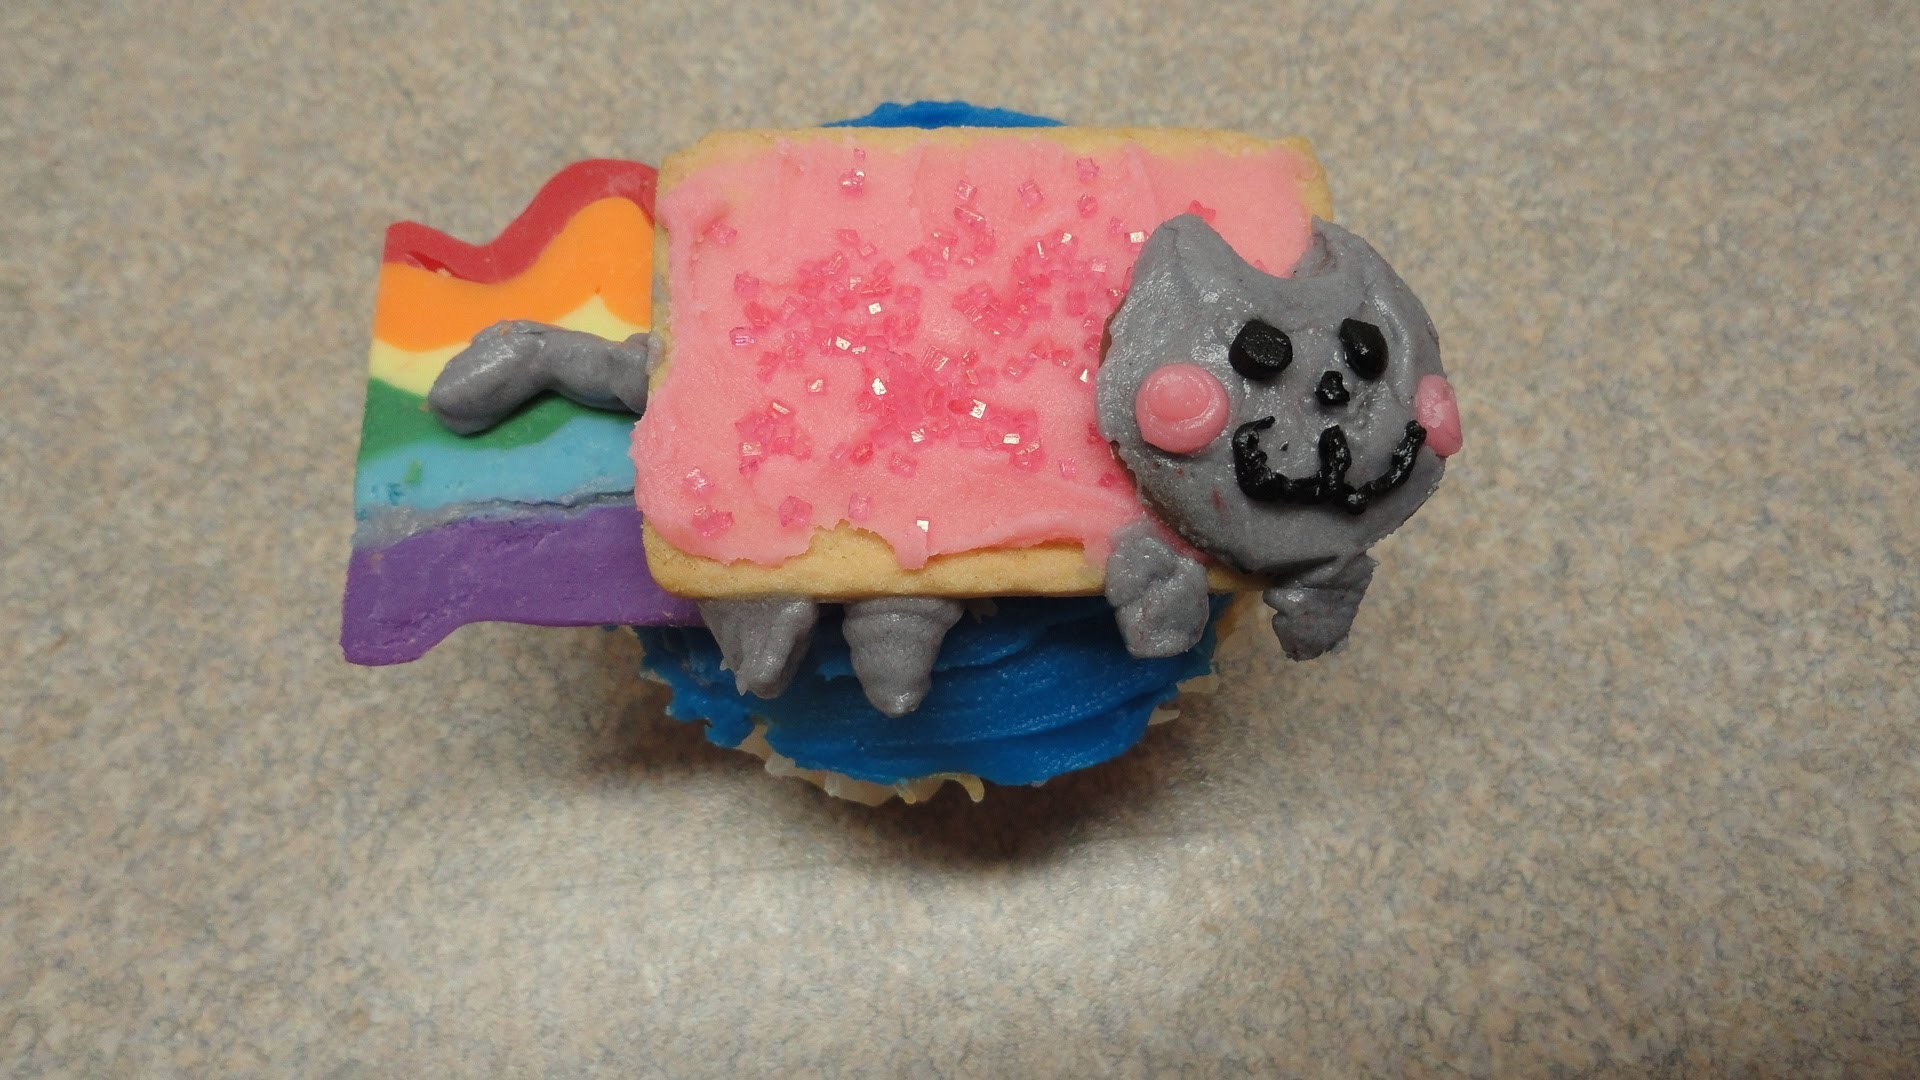 Decorating Cupcakes #80: Nyan Cat